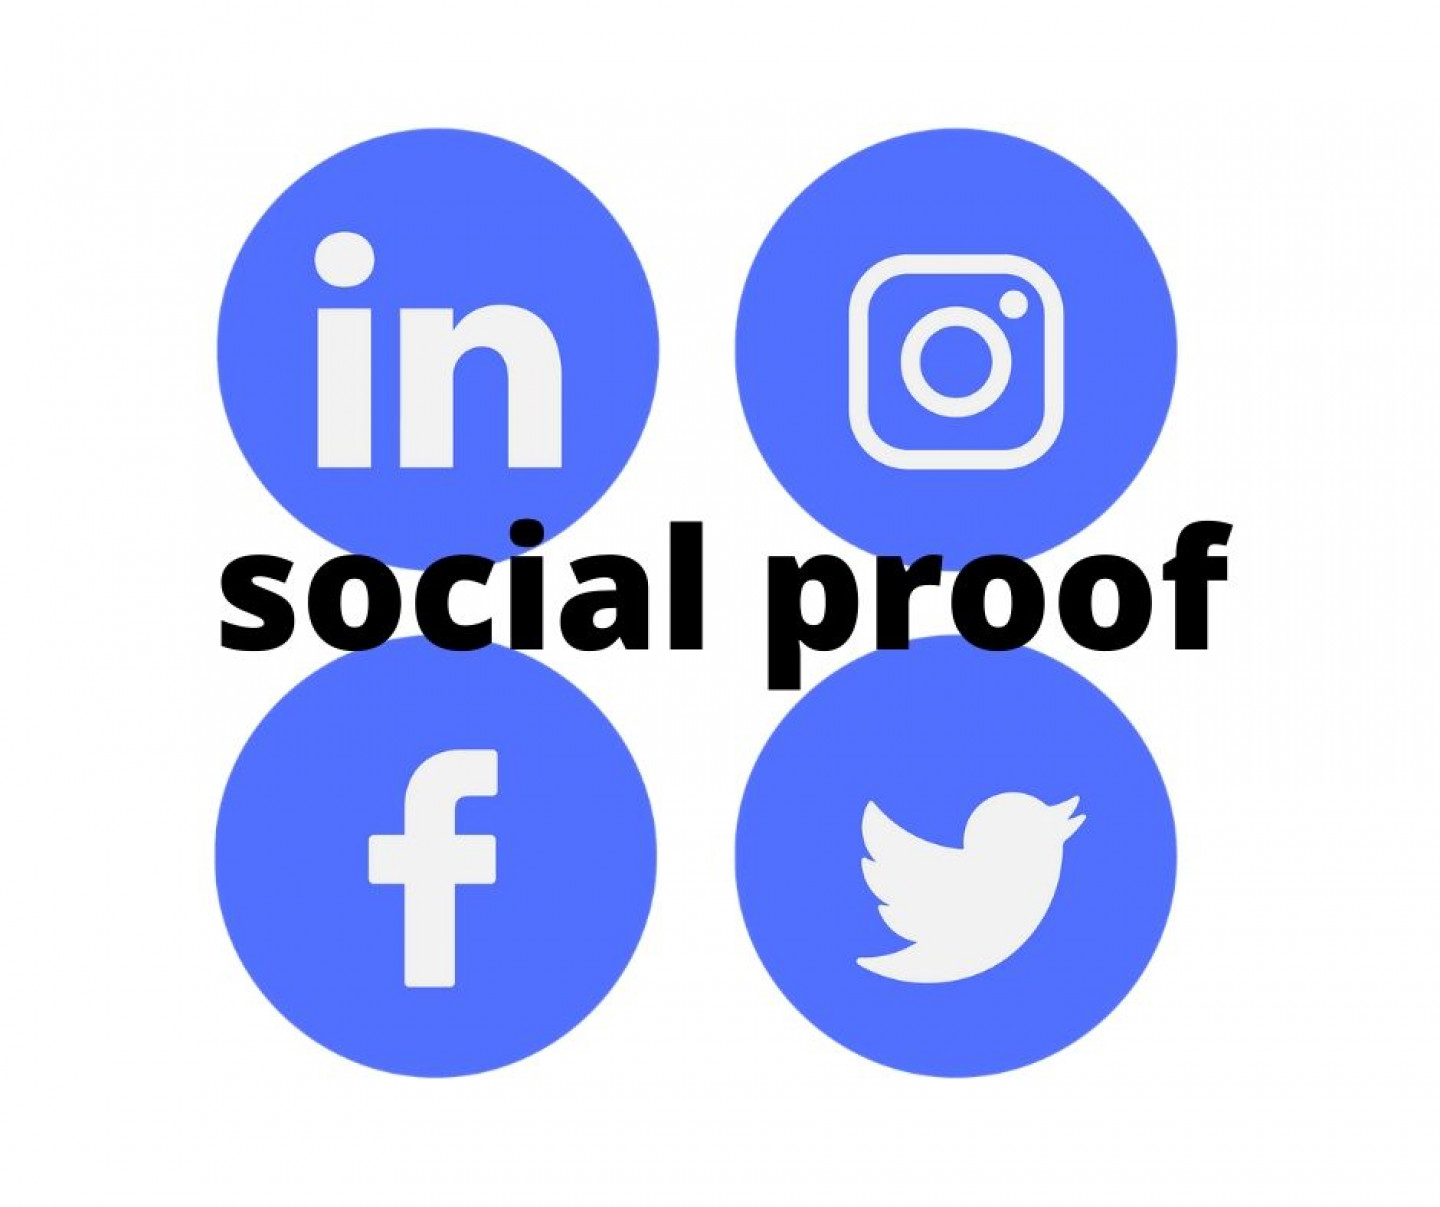 social proof fb